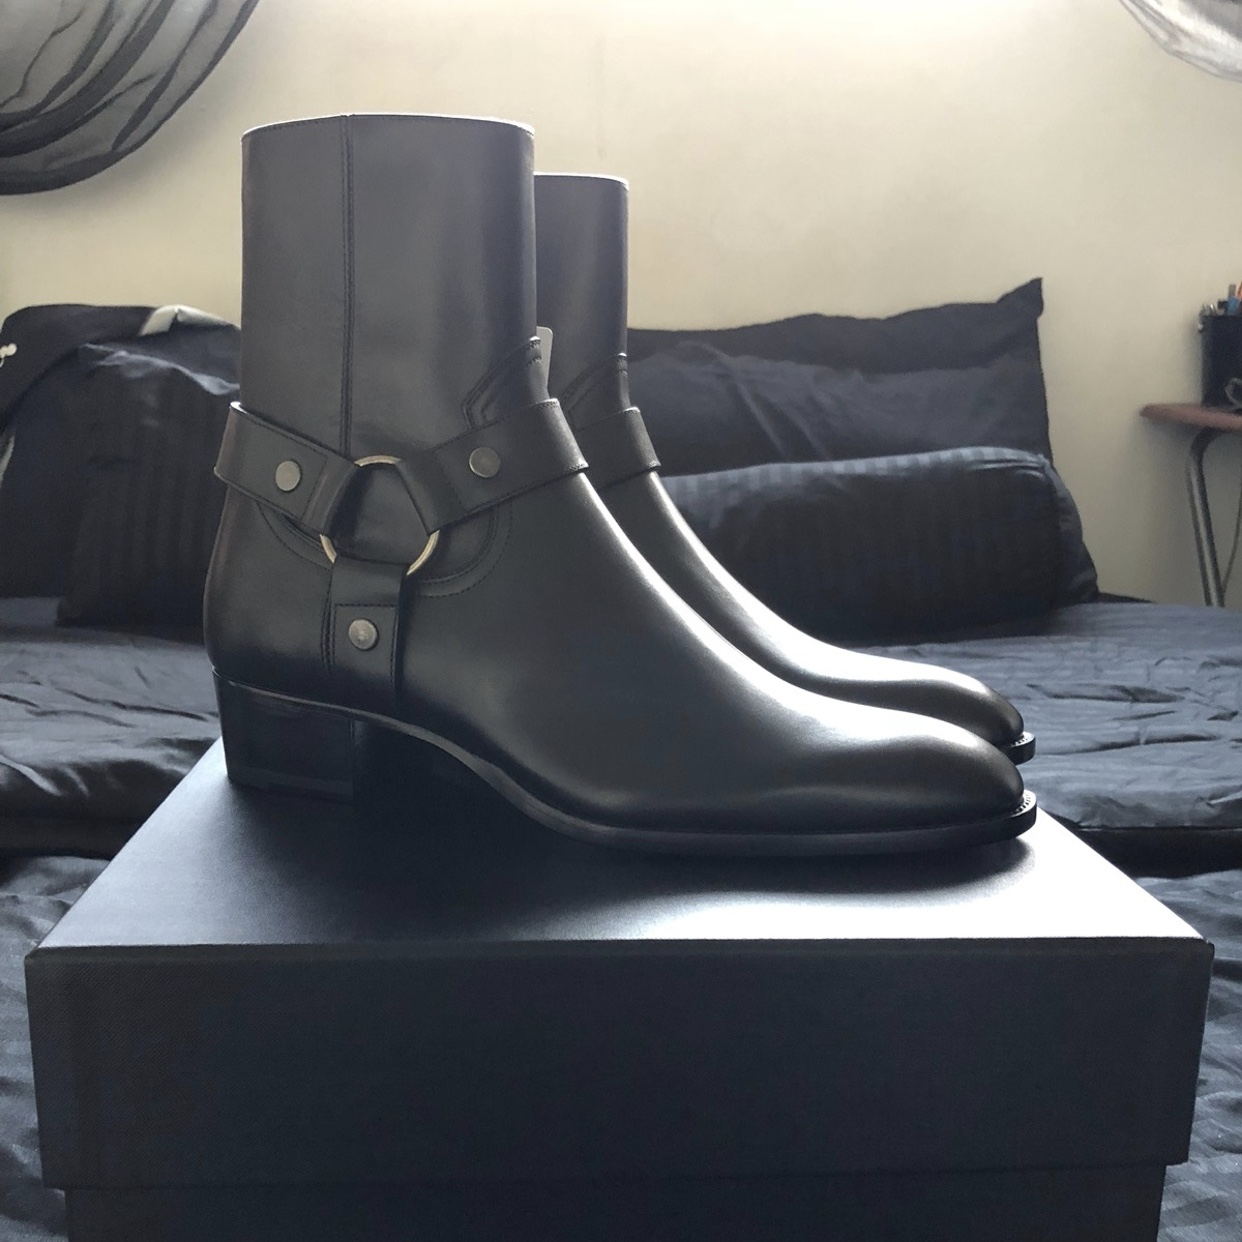 SLP WYATT BOOTS IN SIZE 42 Cleaning out